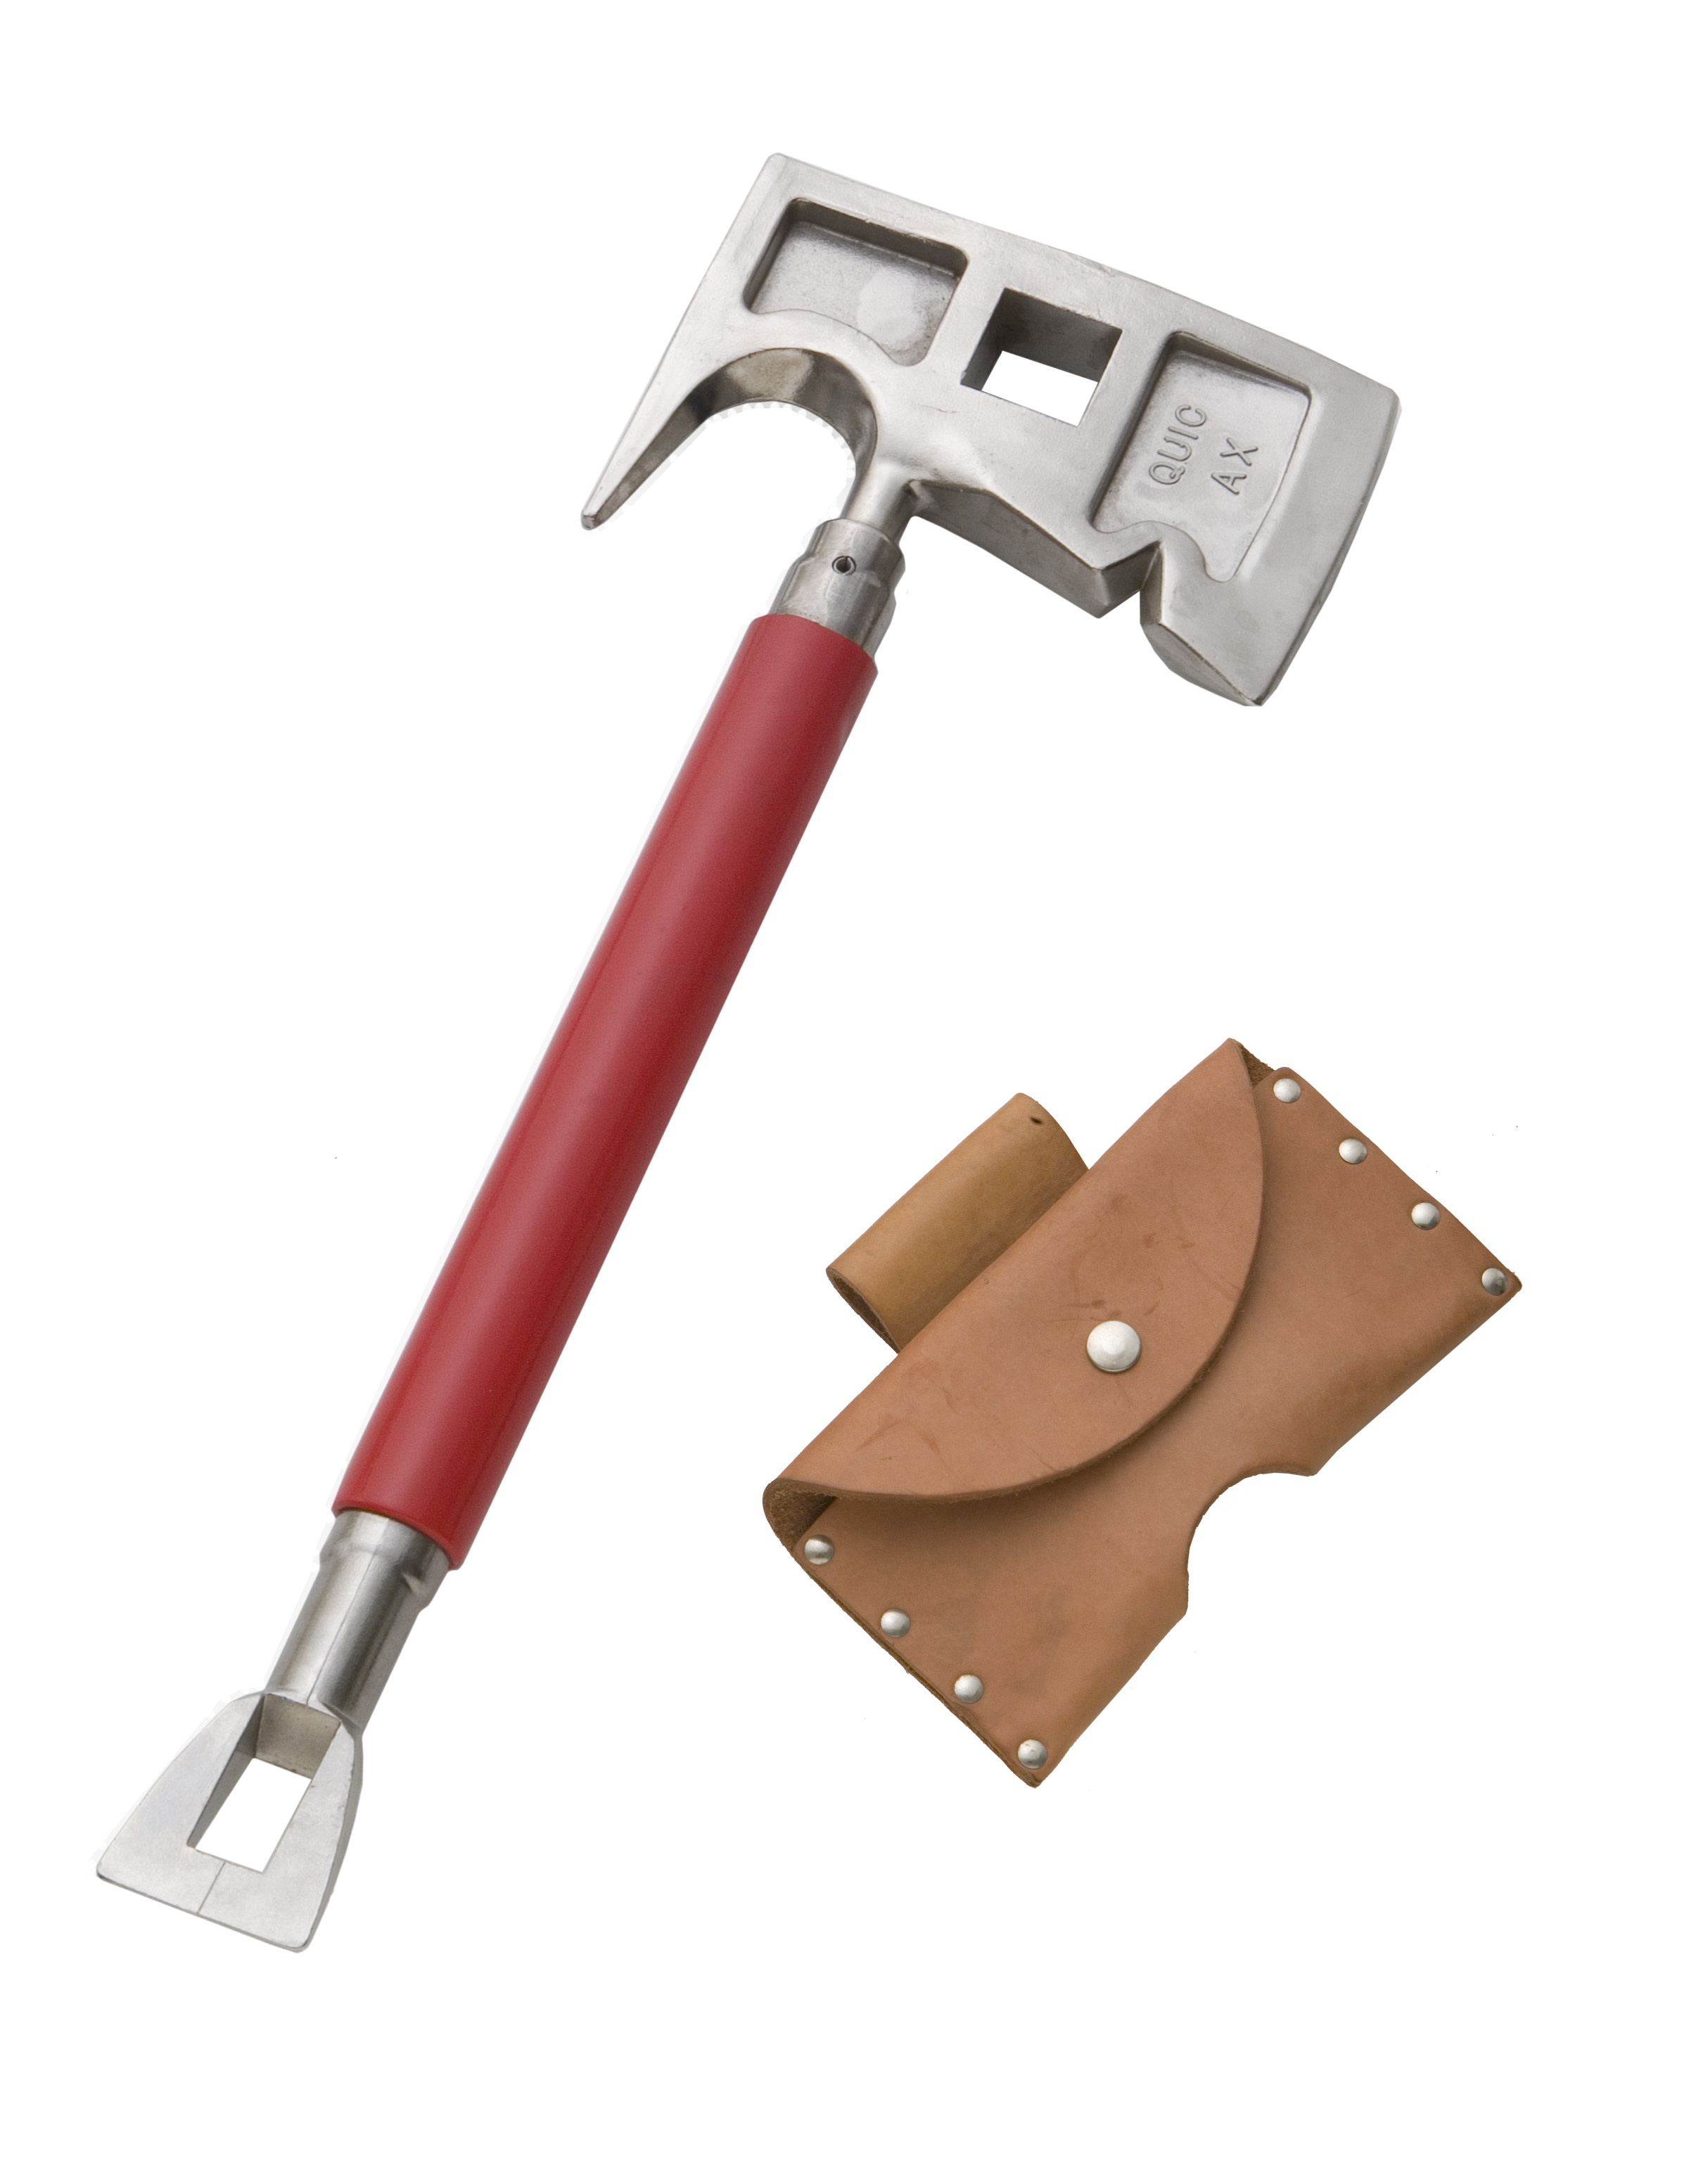 QUIC-AXE Super Tool – Square